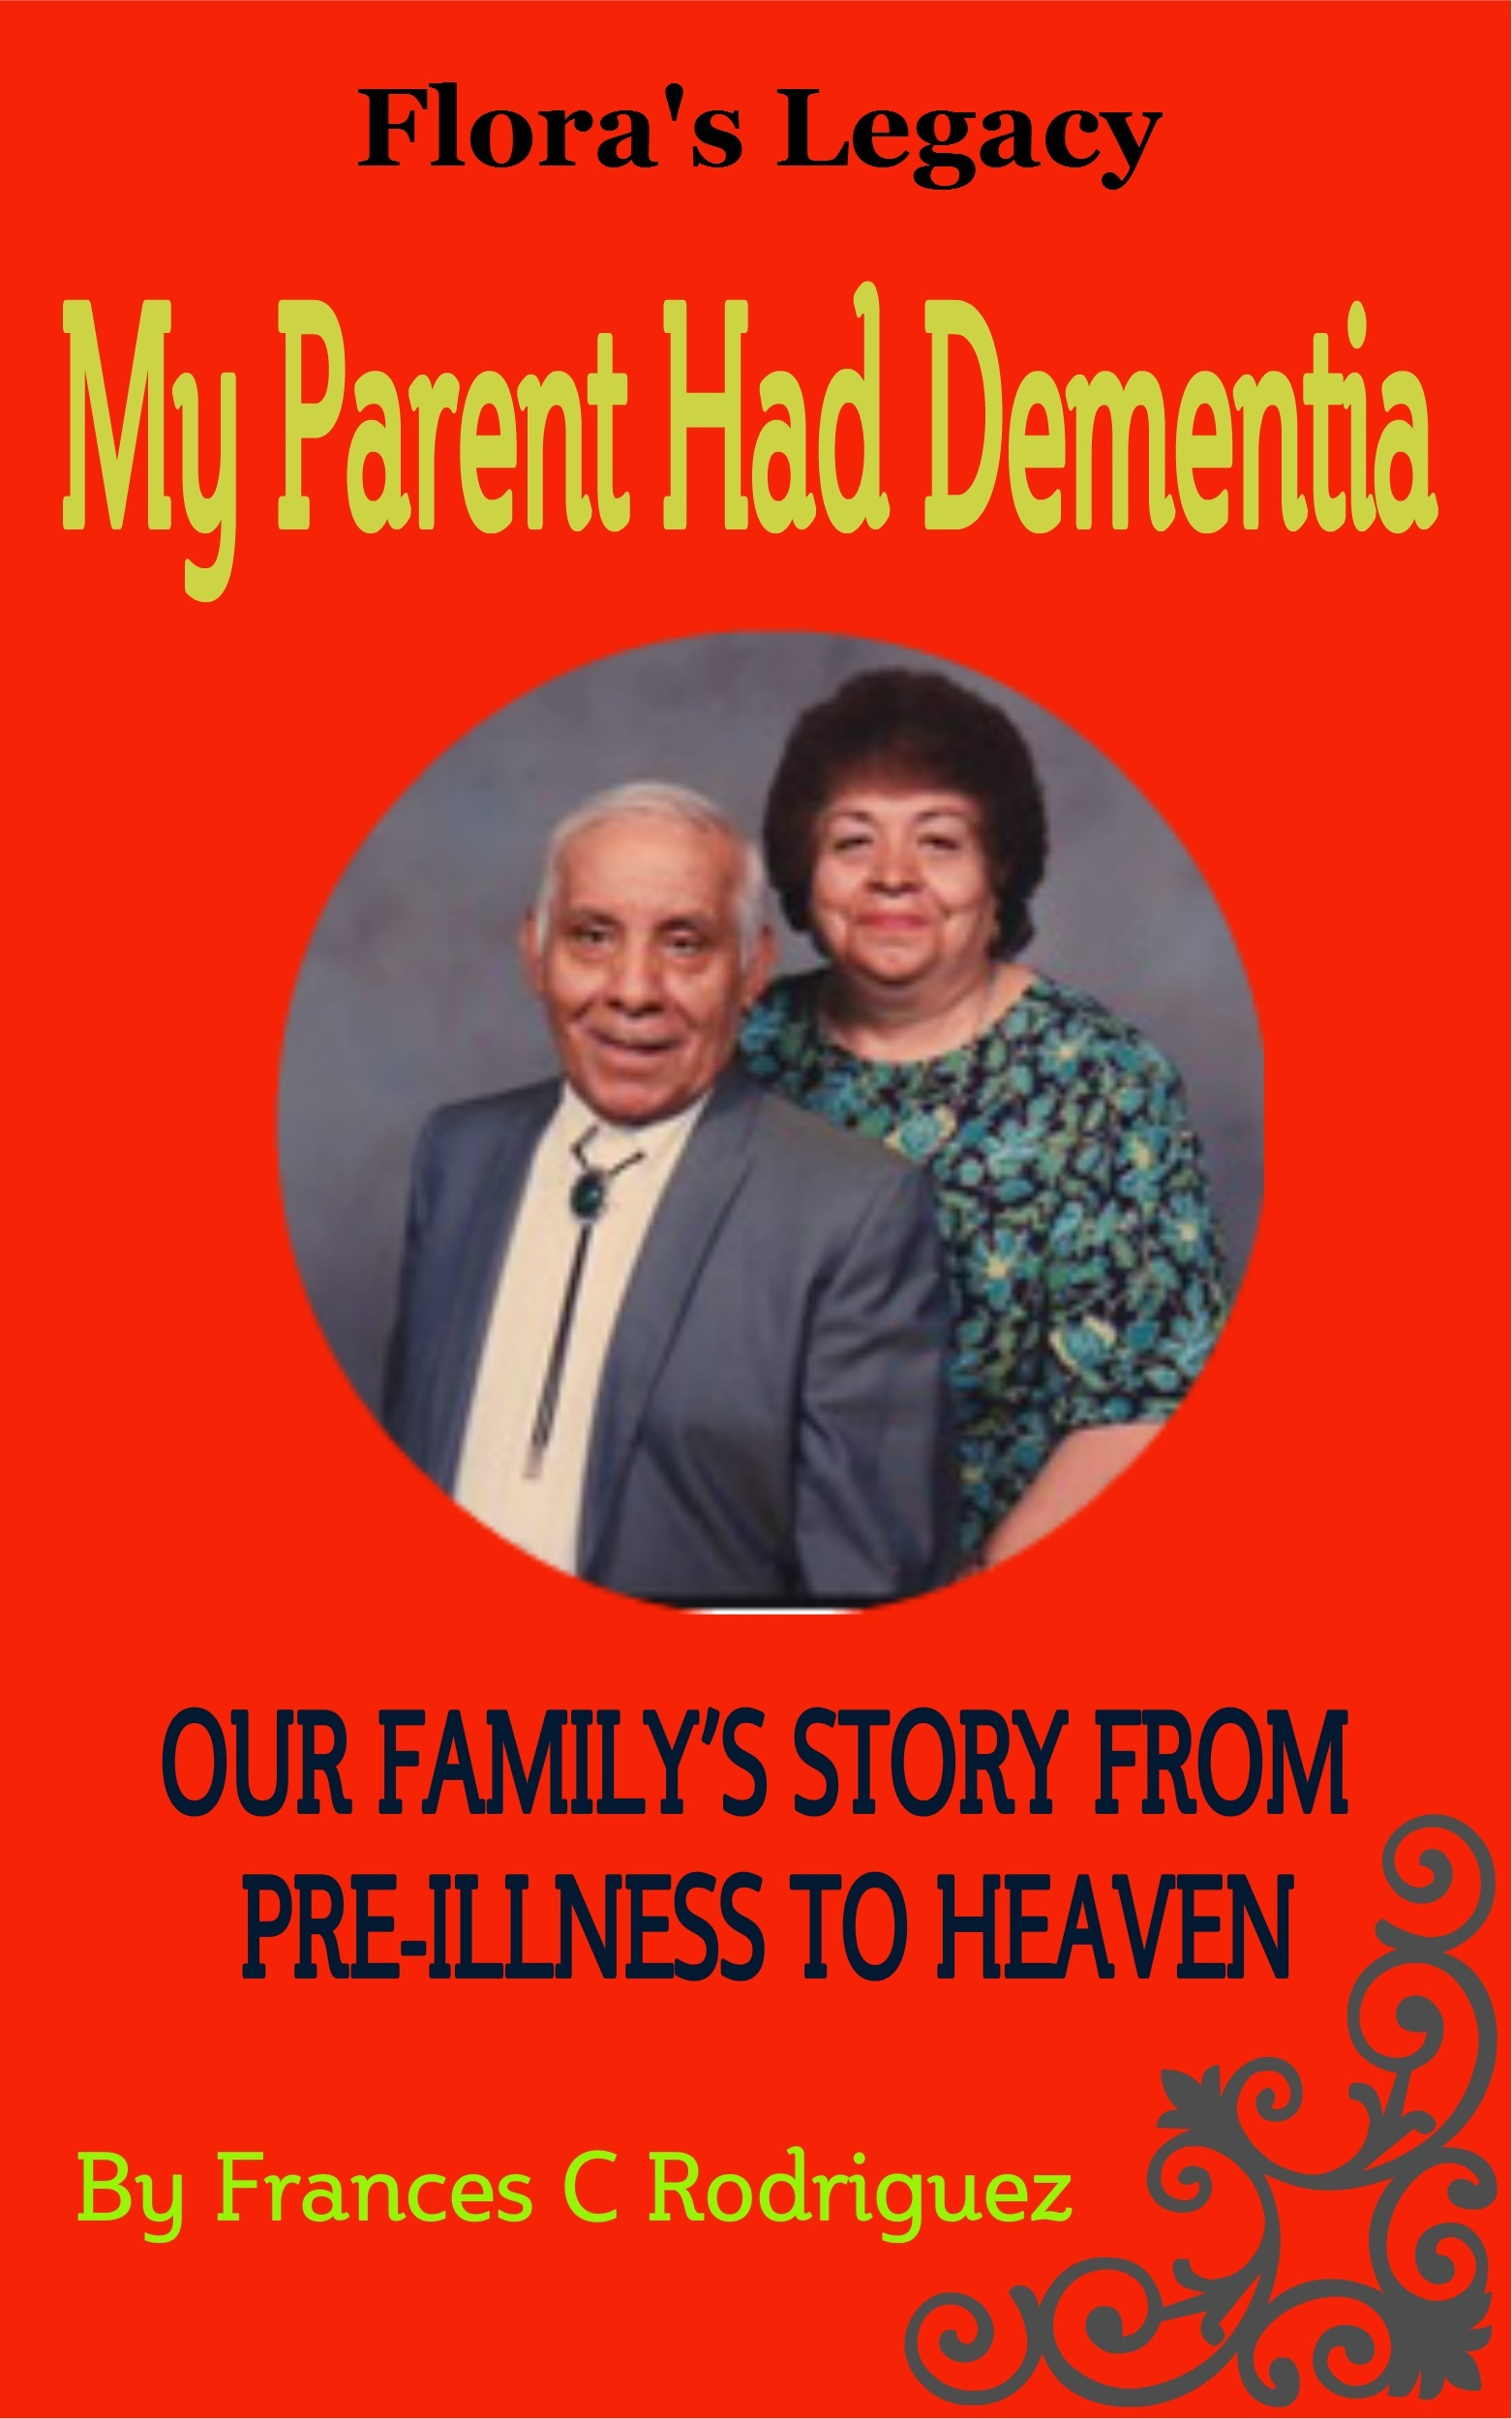 My Parent Had Dementia: Our Familys Story from Pre-Illness to Heaven (Floras Legacy Book 3) Frances C. Rodriguez